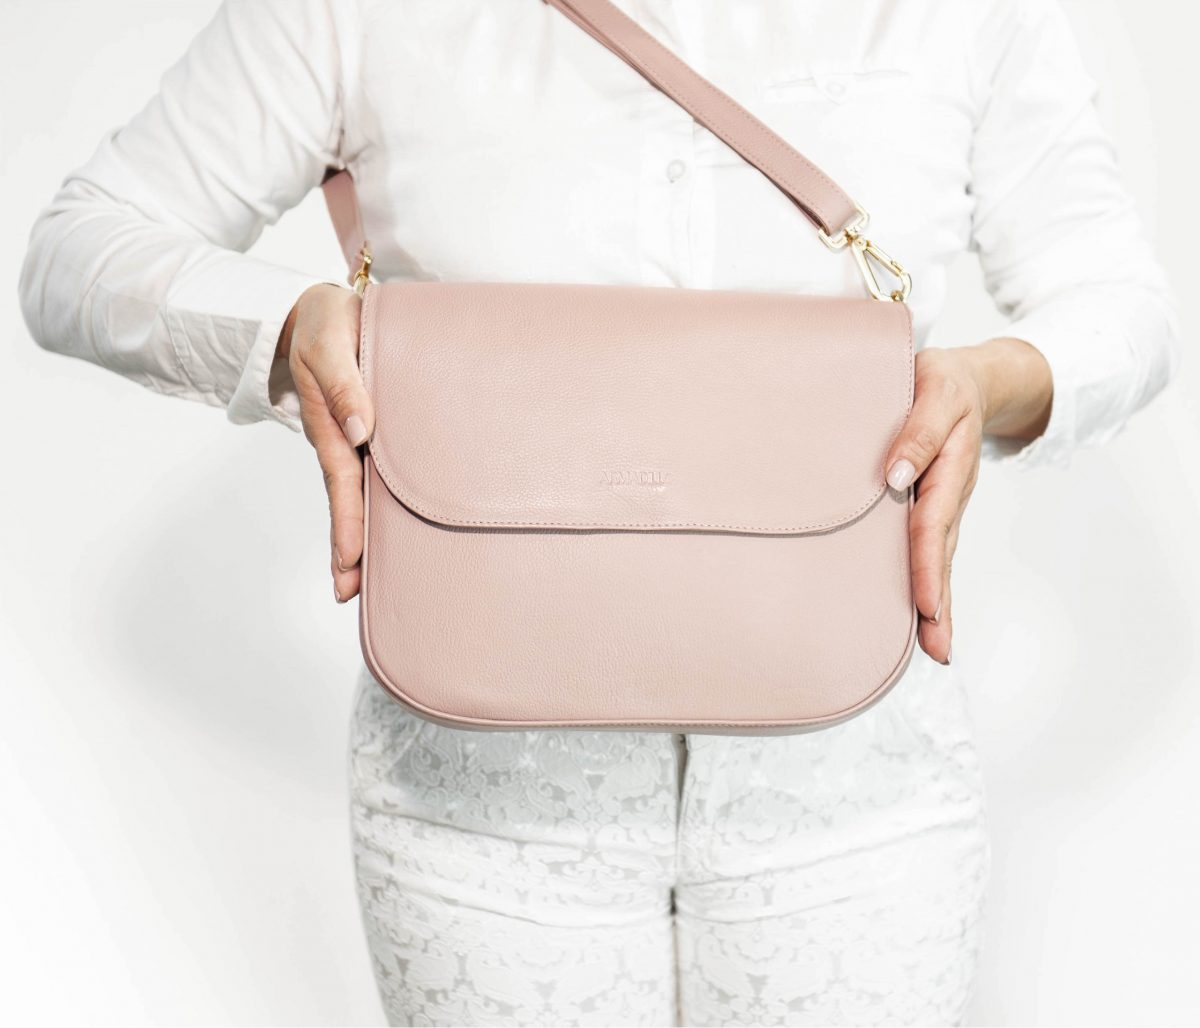 armadillo-leather-handbags-totes-wallets-clutches-backpack-small-leather-goods-accessories-office-travel-gifts-in-canada-crossbody-purse-pink-mauve-dusty-pink-rose